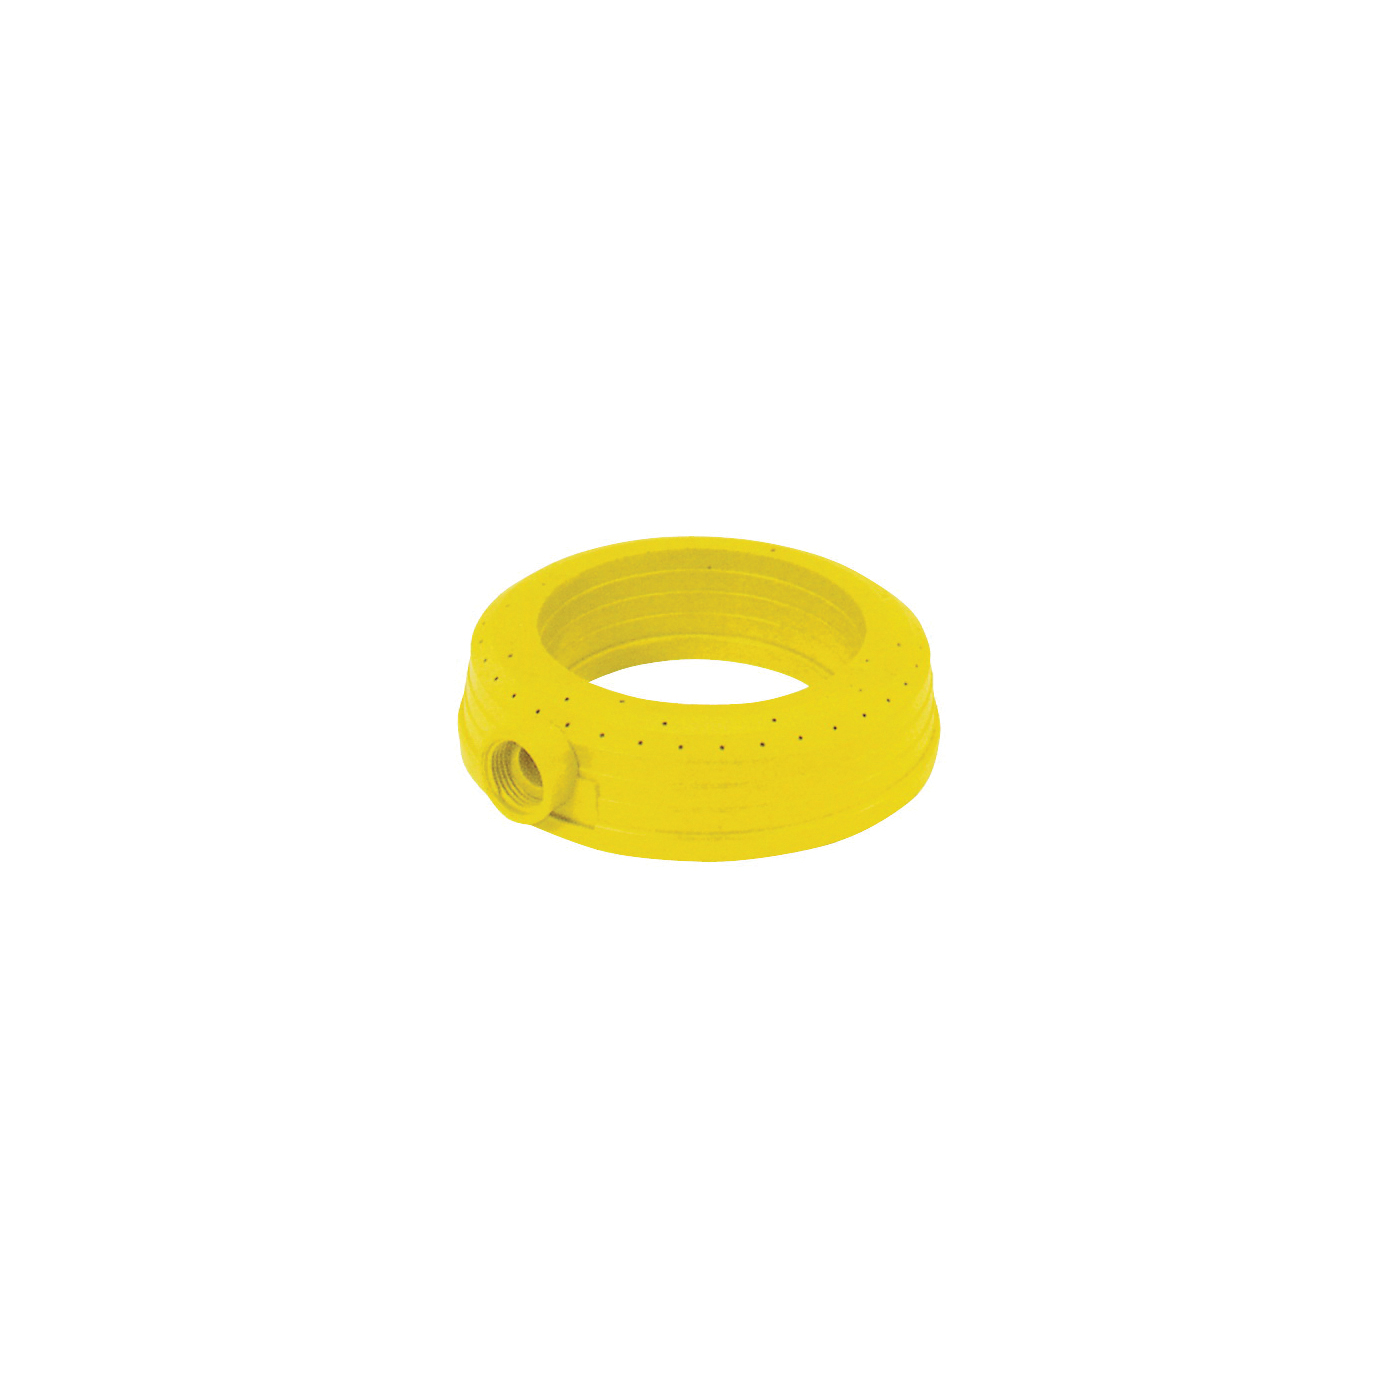 Picture of Gilmour 830603-1001 Stationary Sprinkler, 30 ft, Full-Circle, Polymer